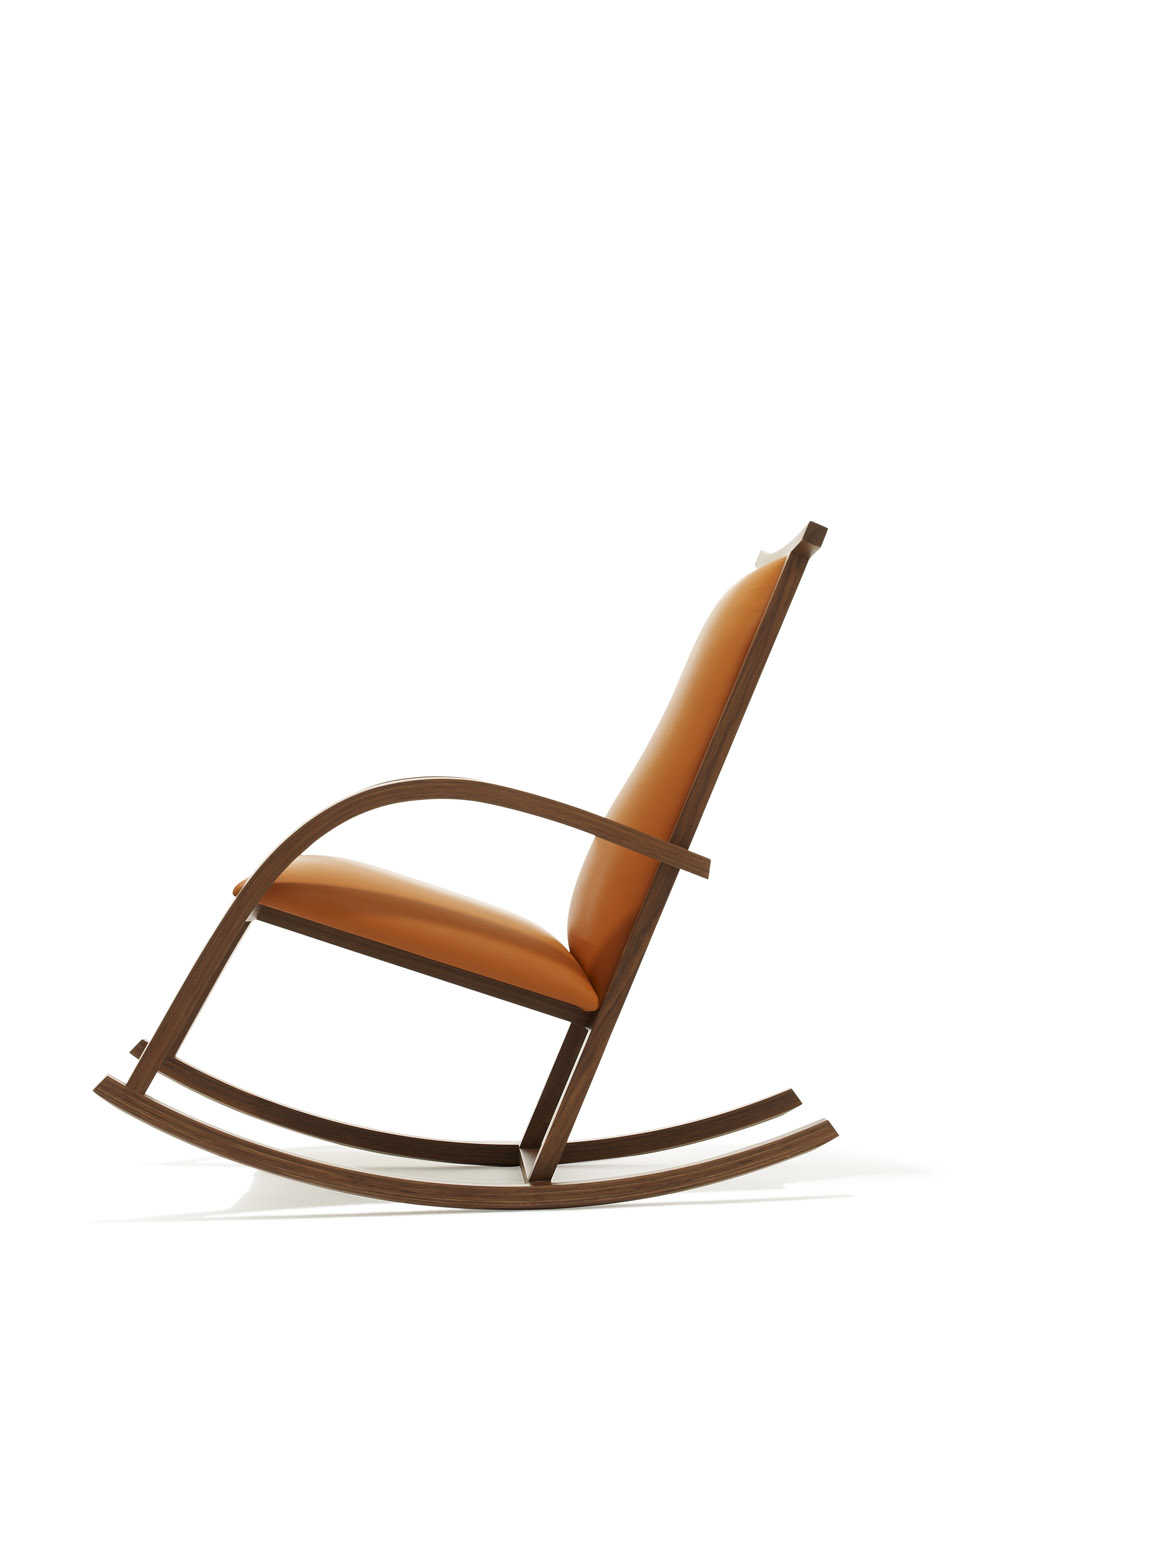 Knoll riart rocker shop knoll riart rockers - Knoll rocking chair ...